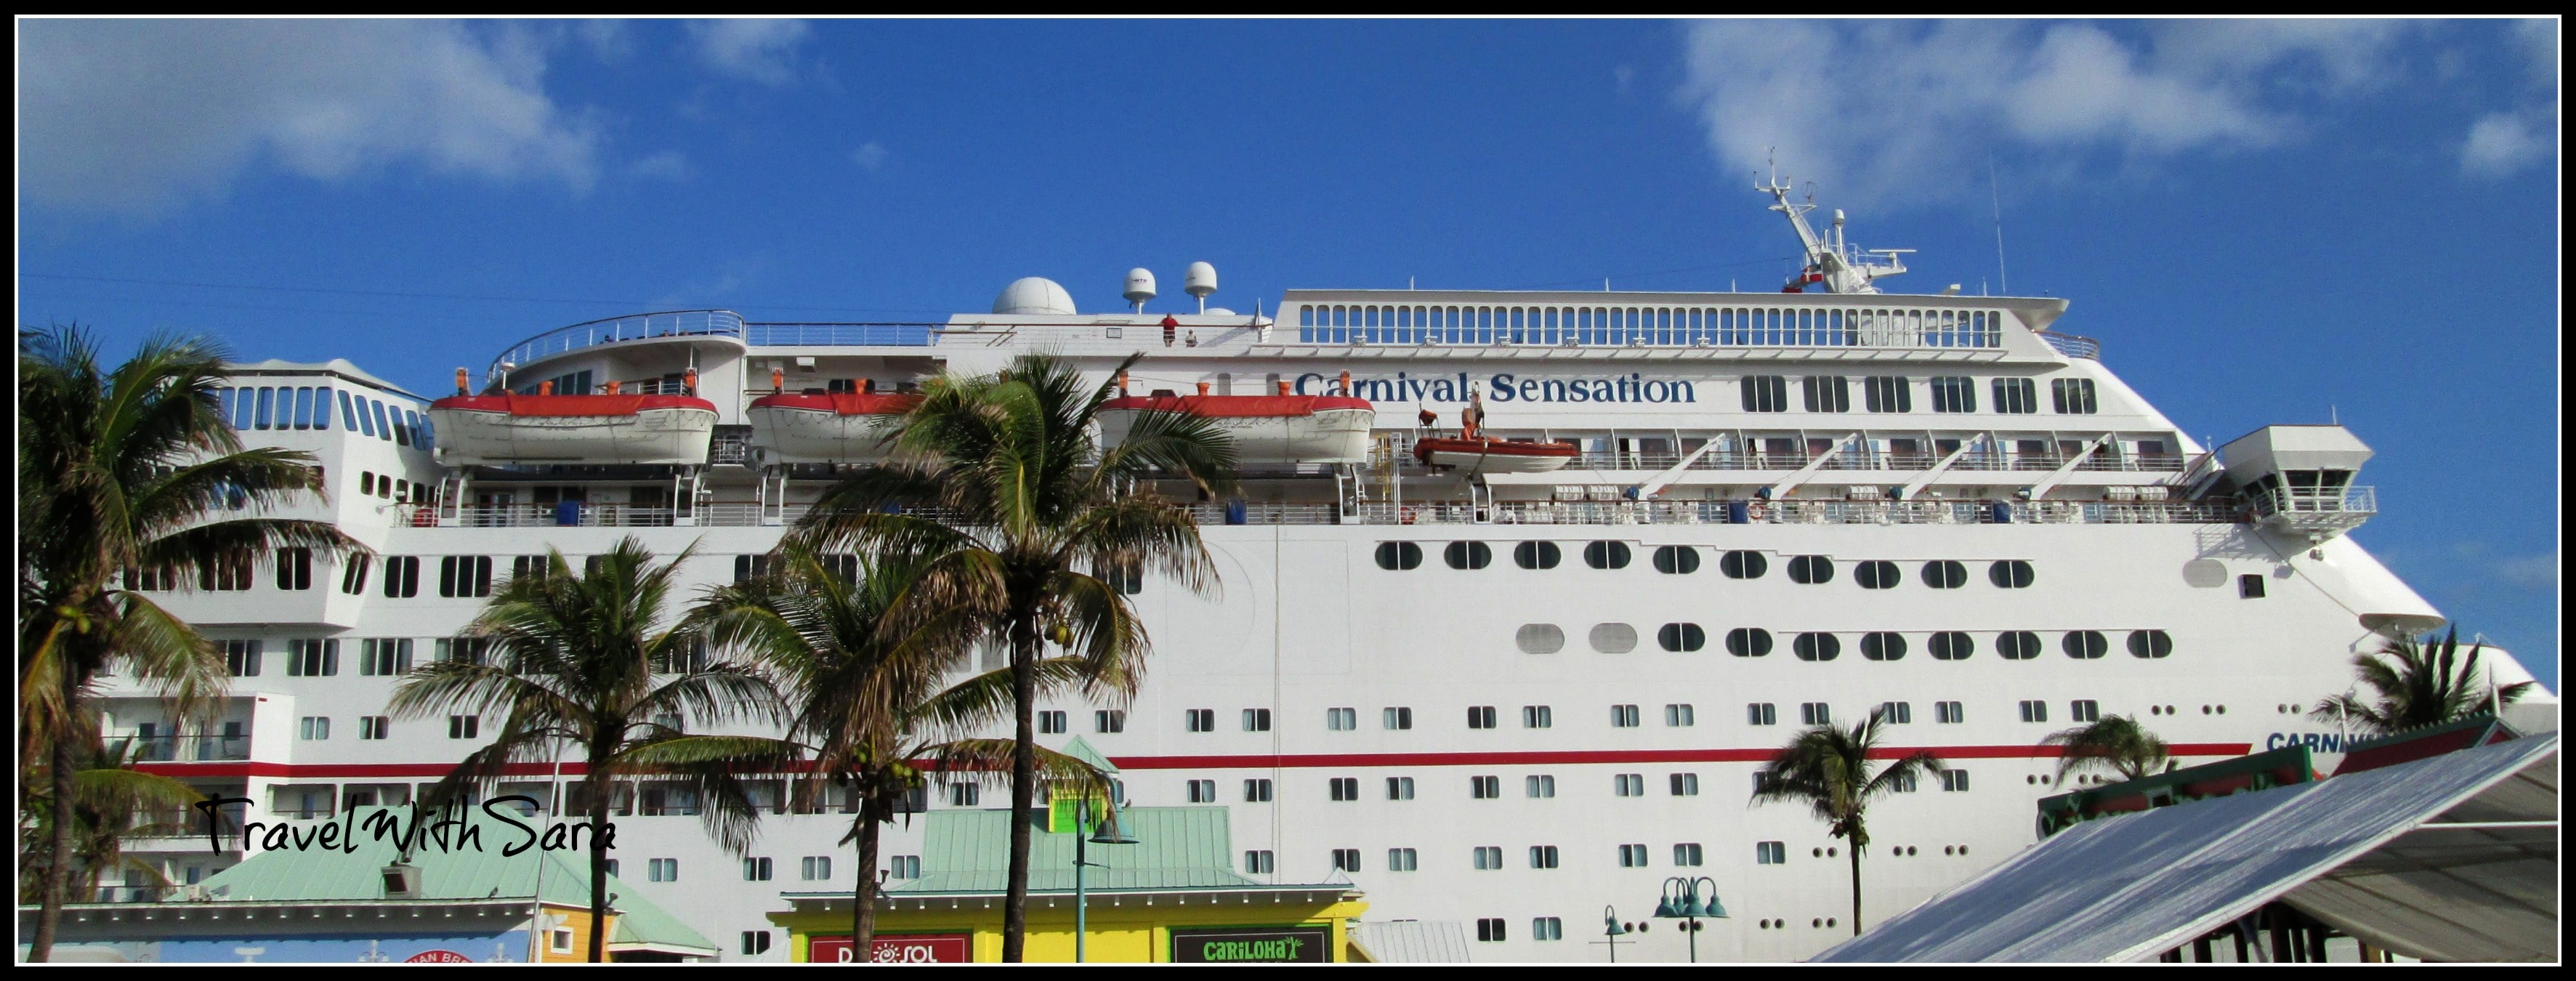 Comparison Of Three Carnival Cruise Ships Carnival Sensation - Sensation cruise ship pictures